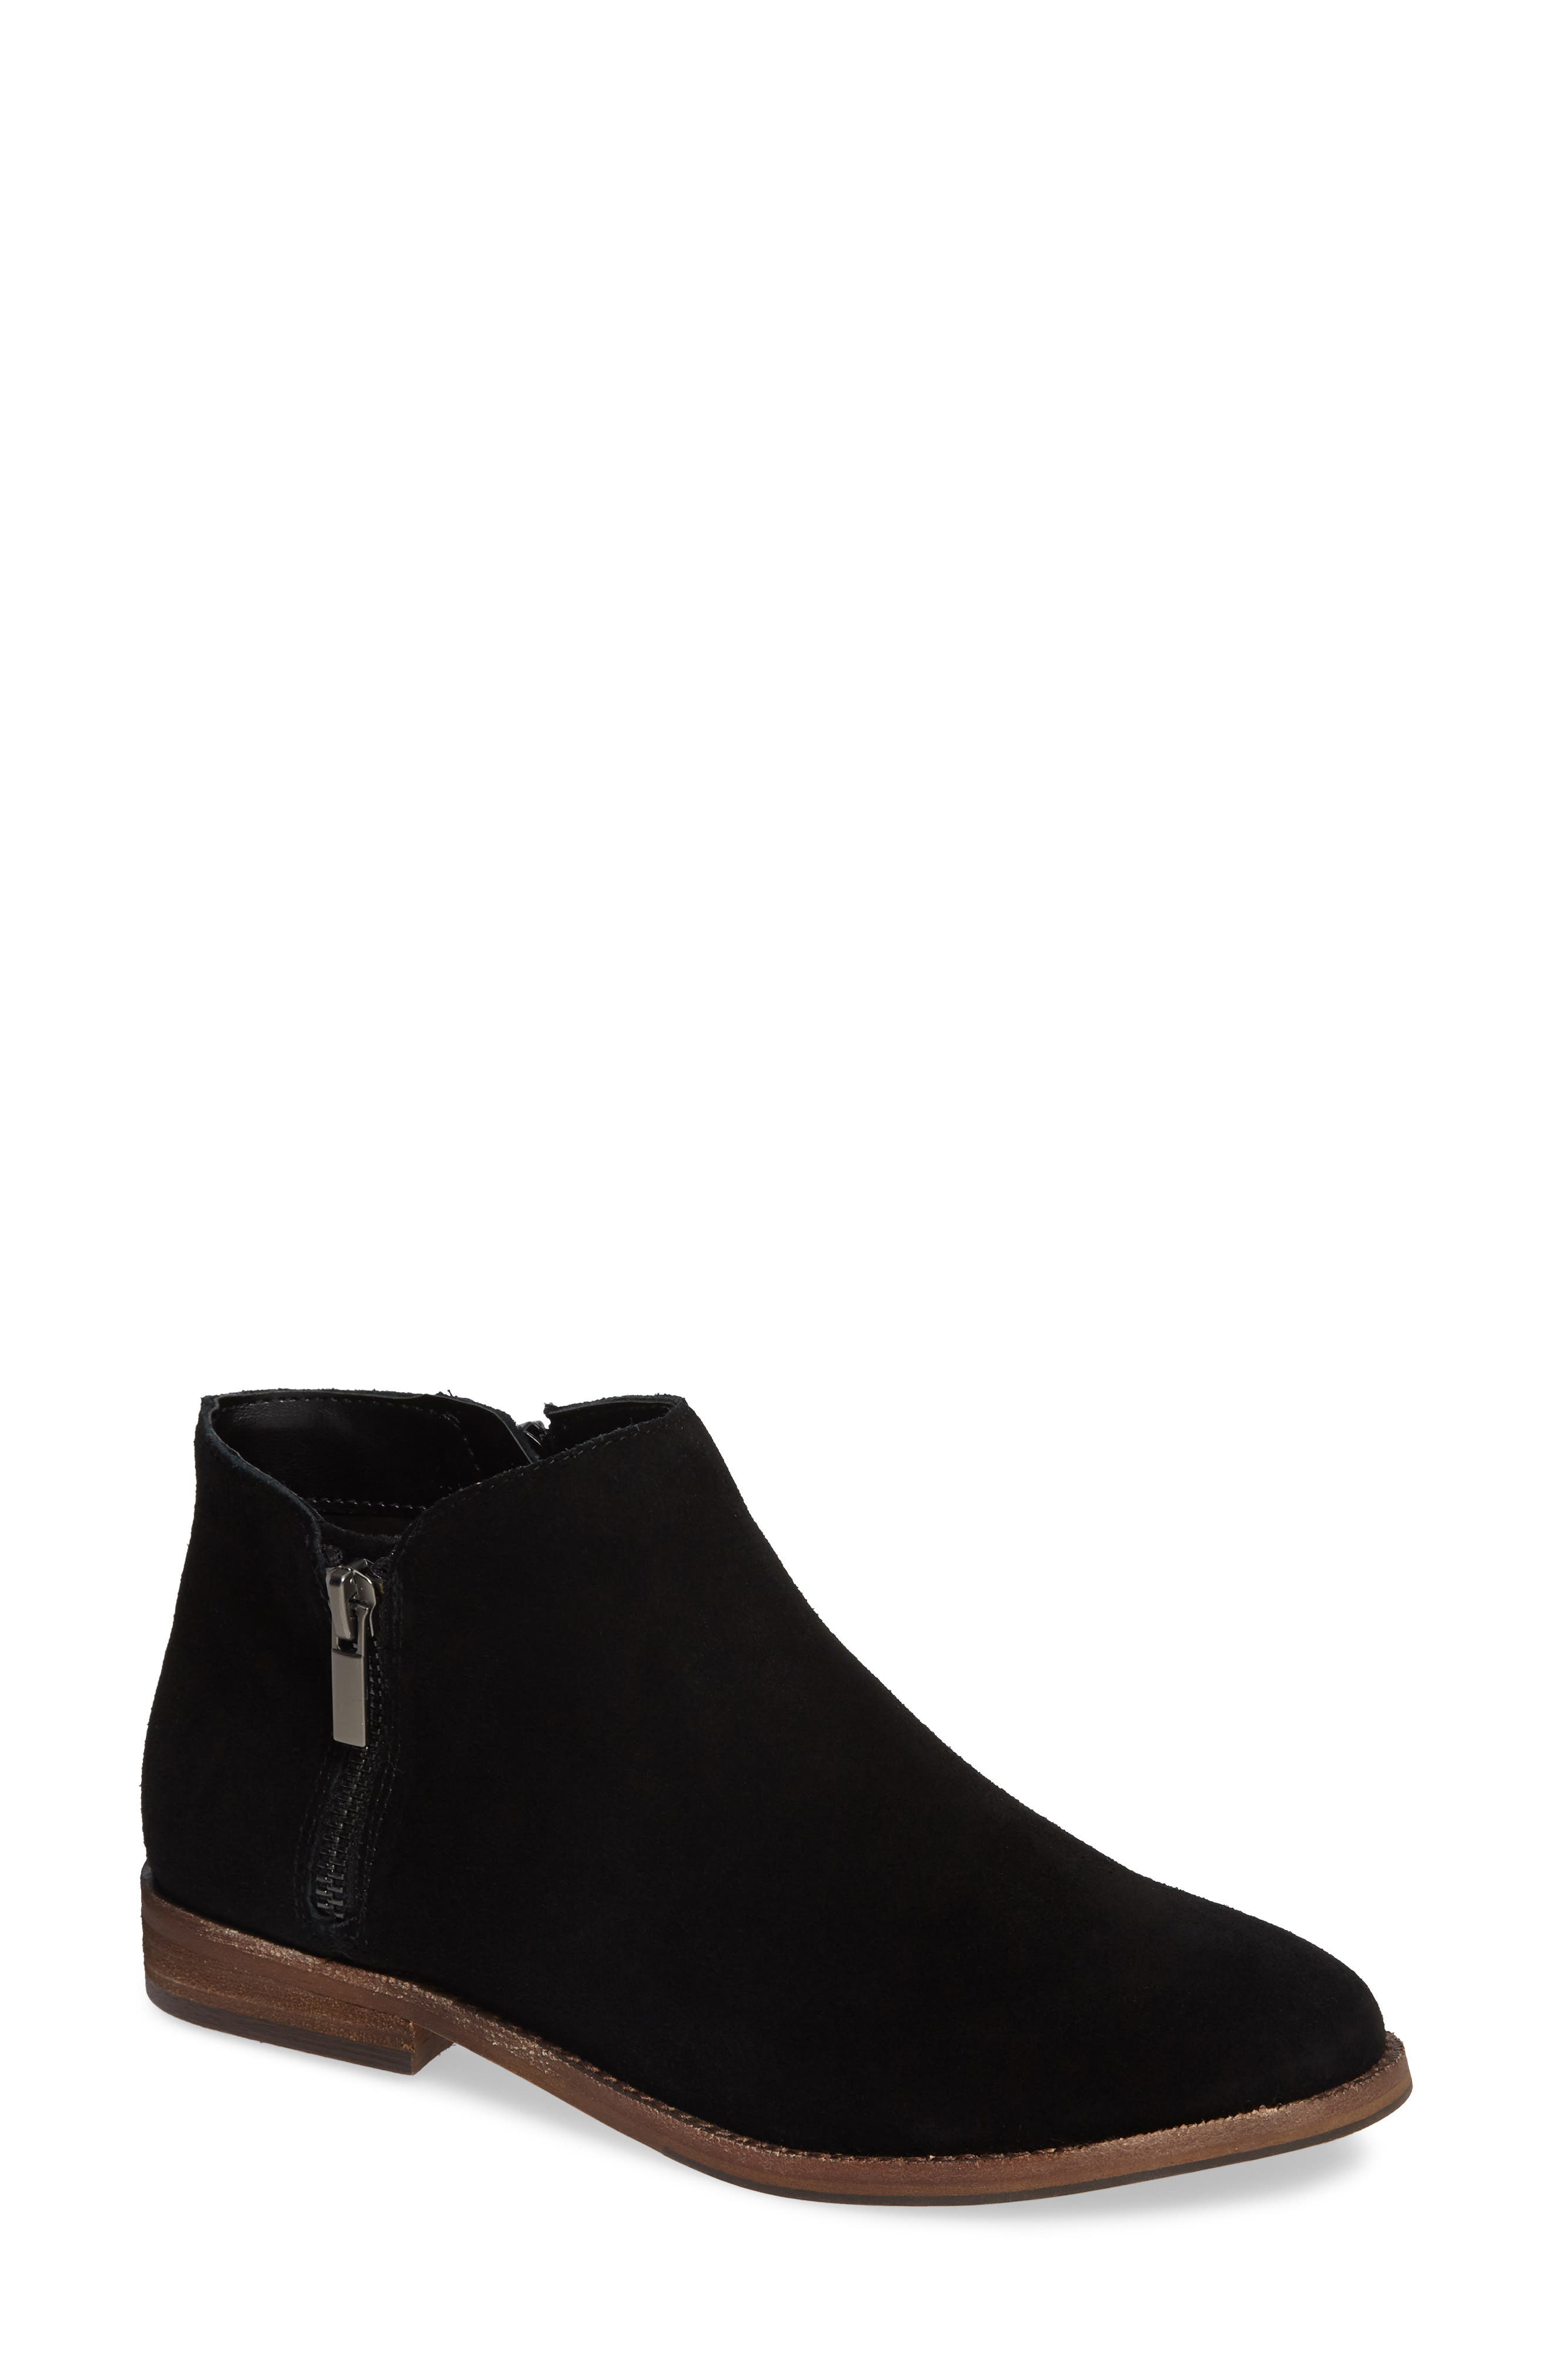 Bevlyn Bootie,                         Main,                         color, 001